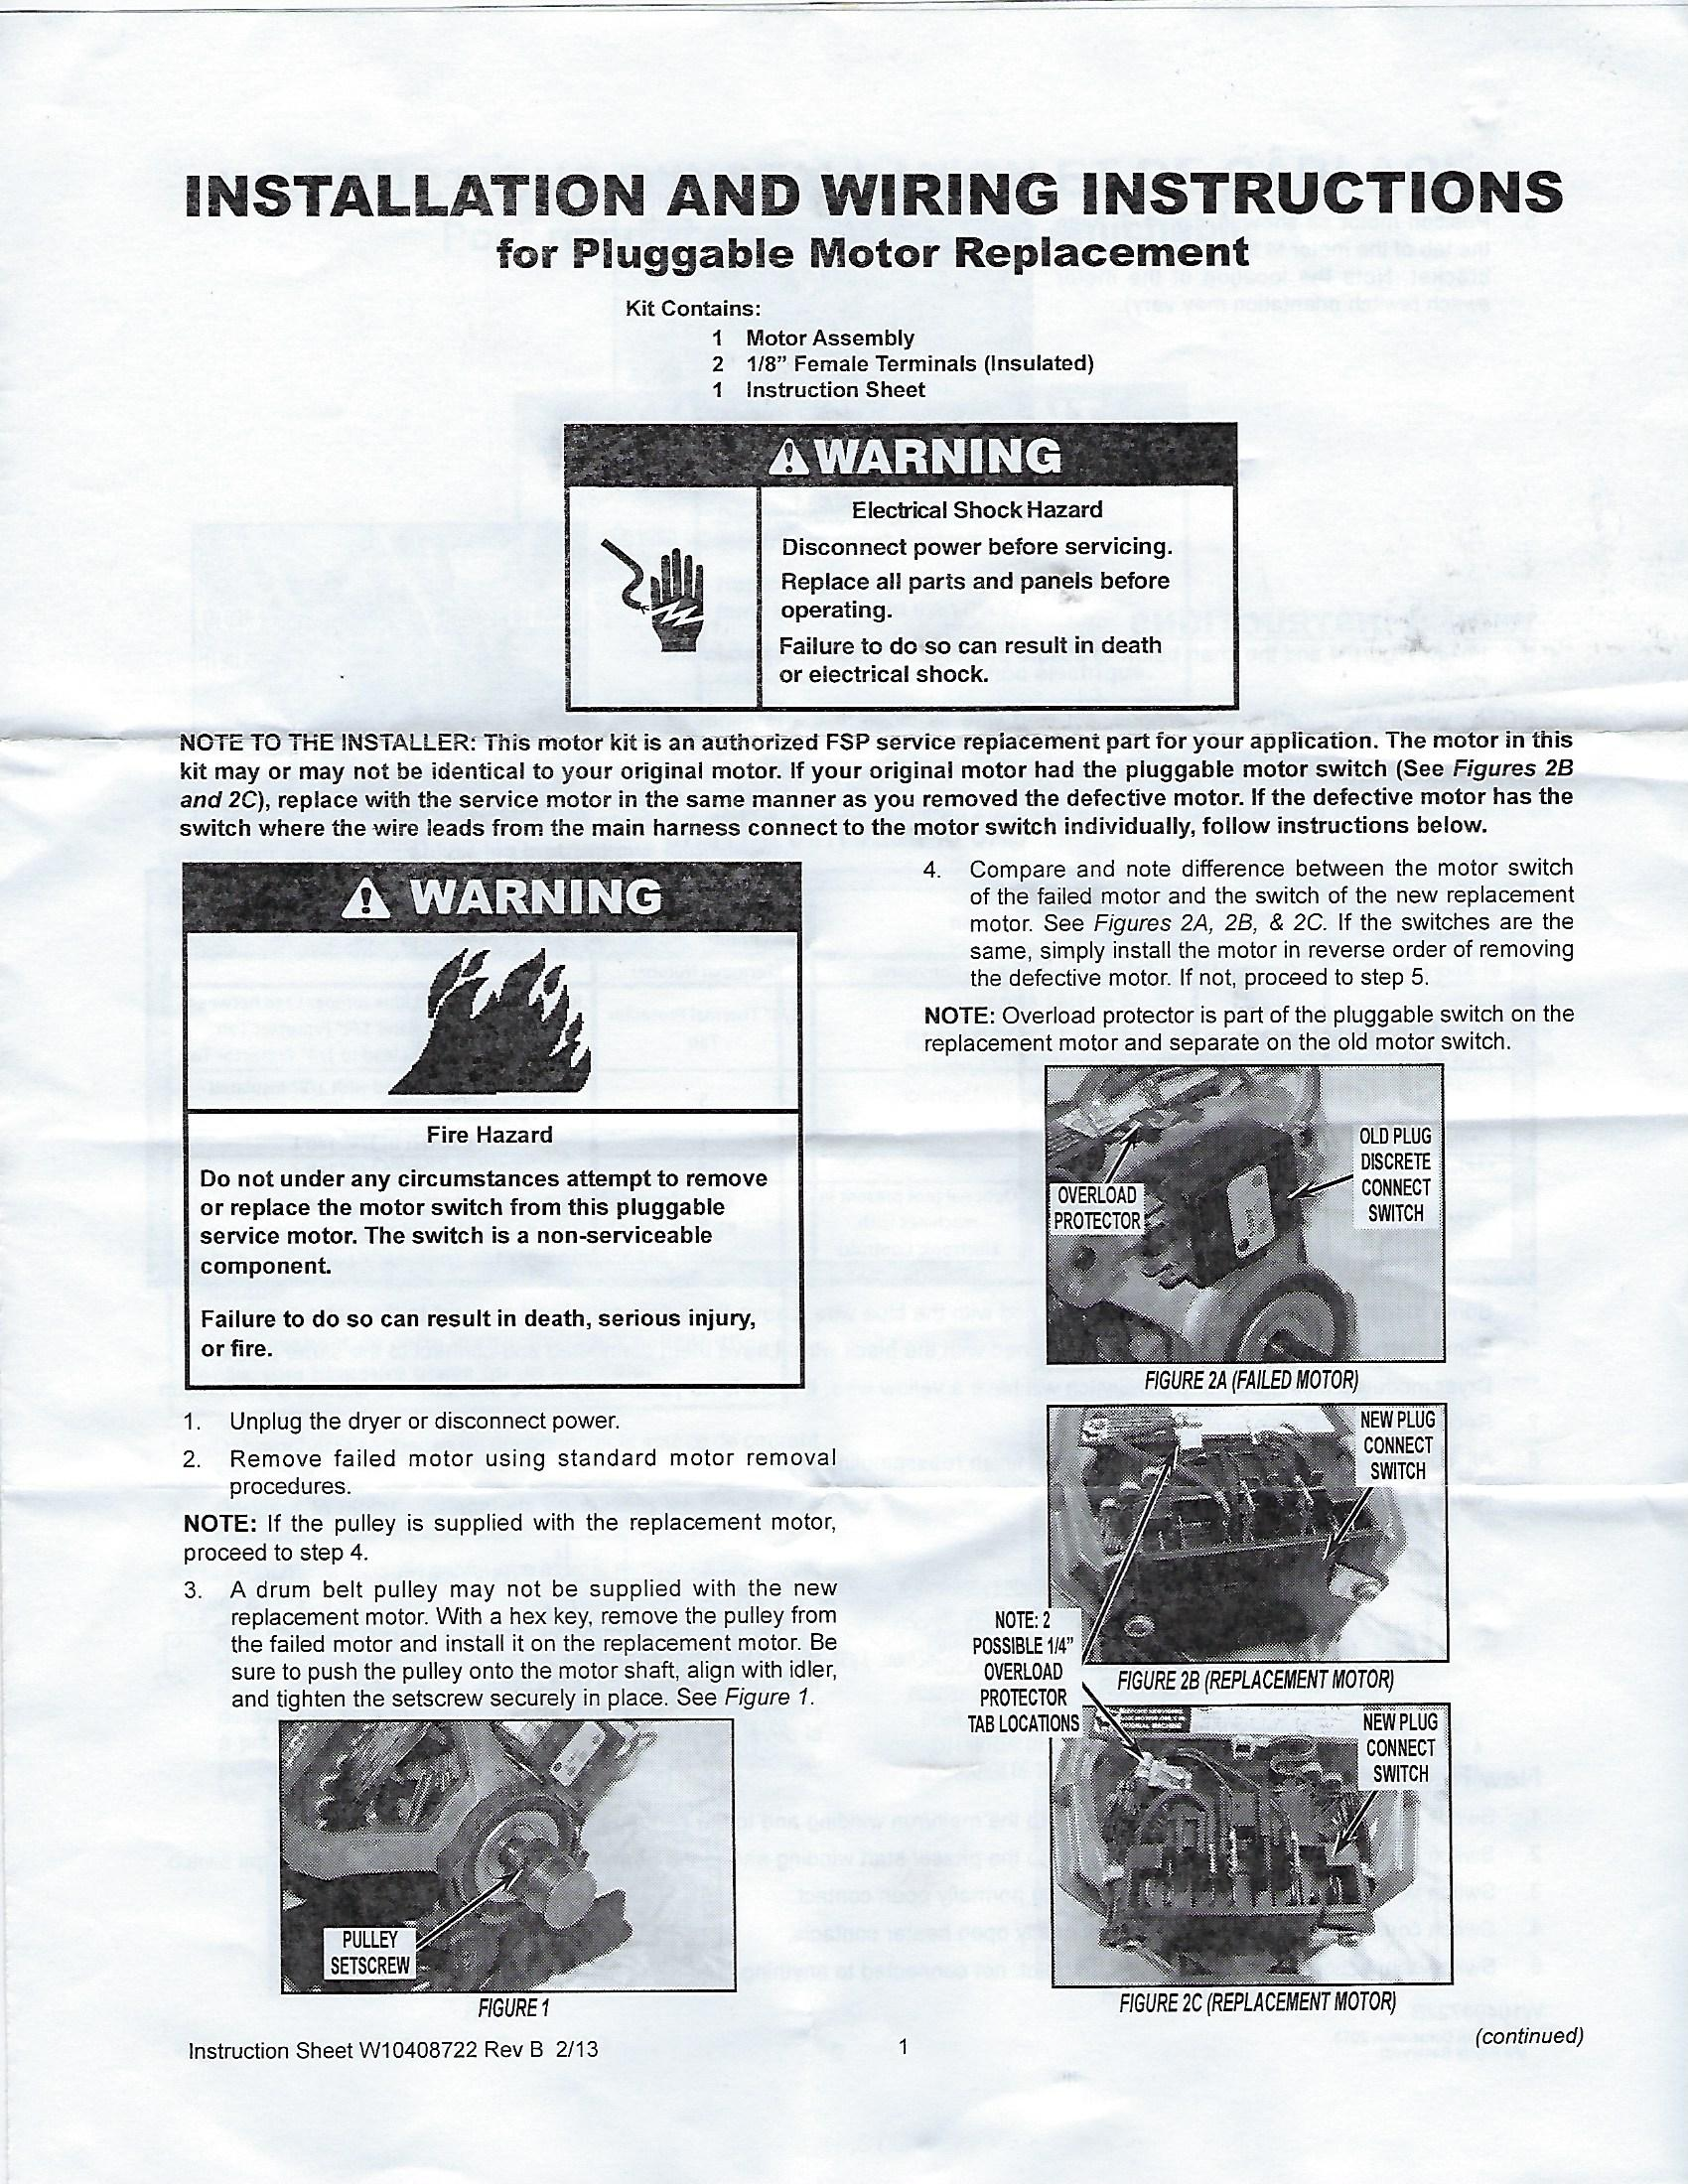 Maytag Dryer Motor Wiring 6 Figure - Block And Schematic Diagrams •